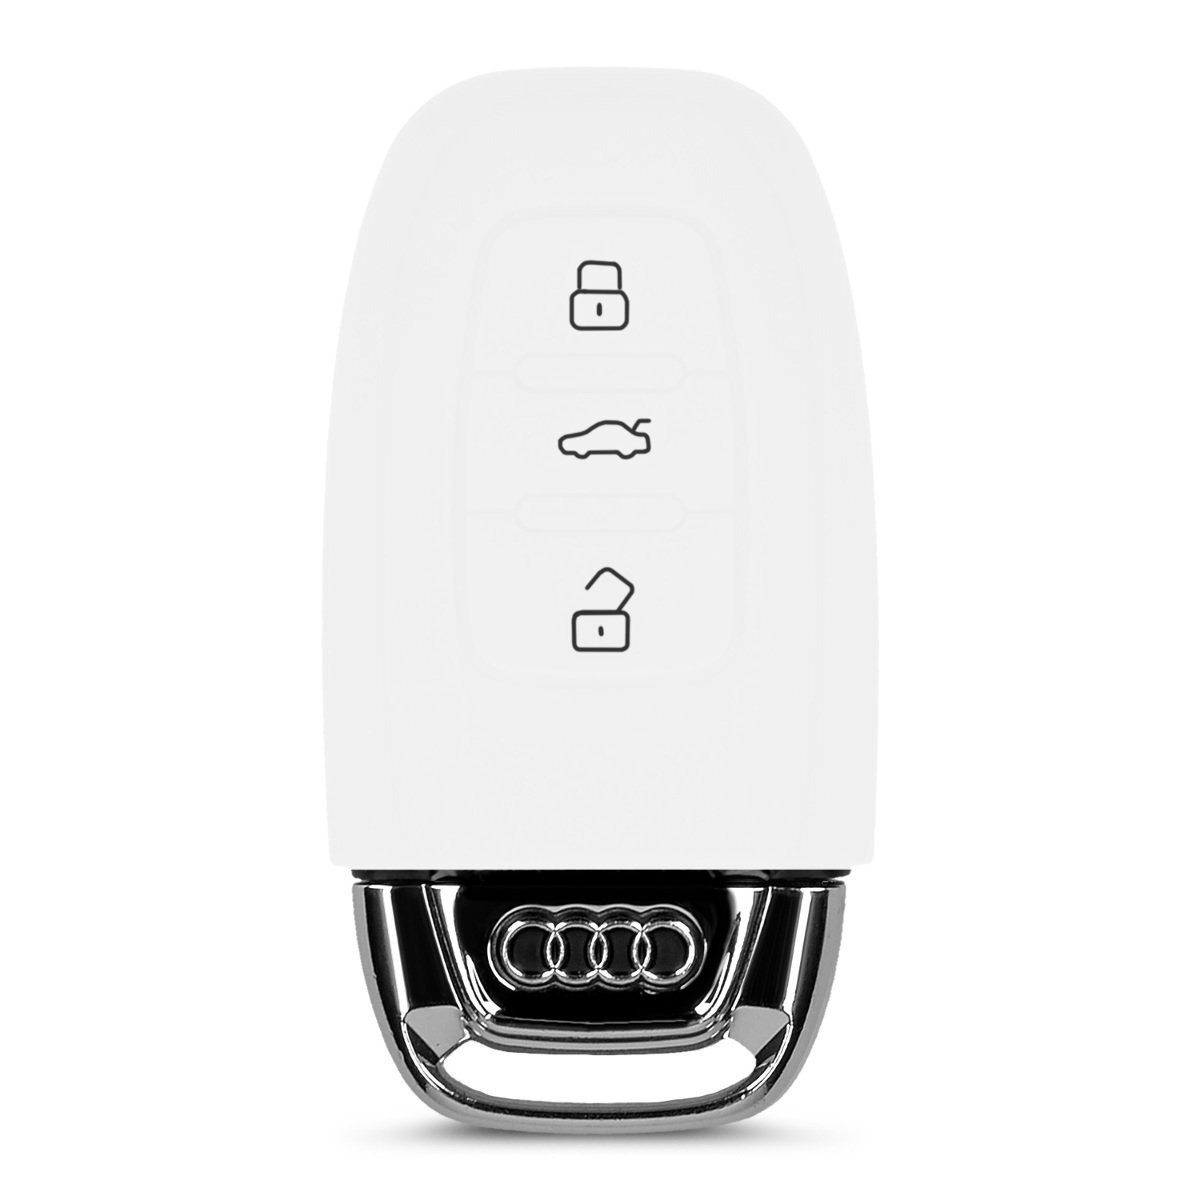 2 Pack EX1 Silicone Protective Car Key Cover Skin for Audi White